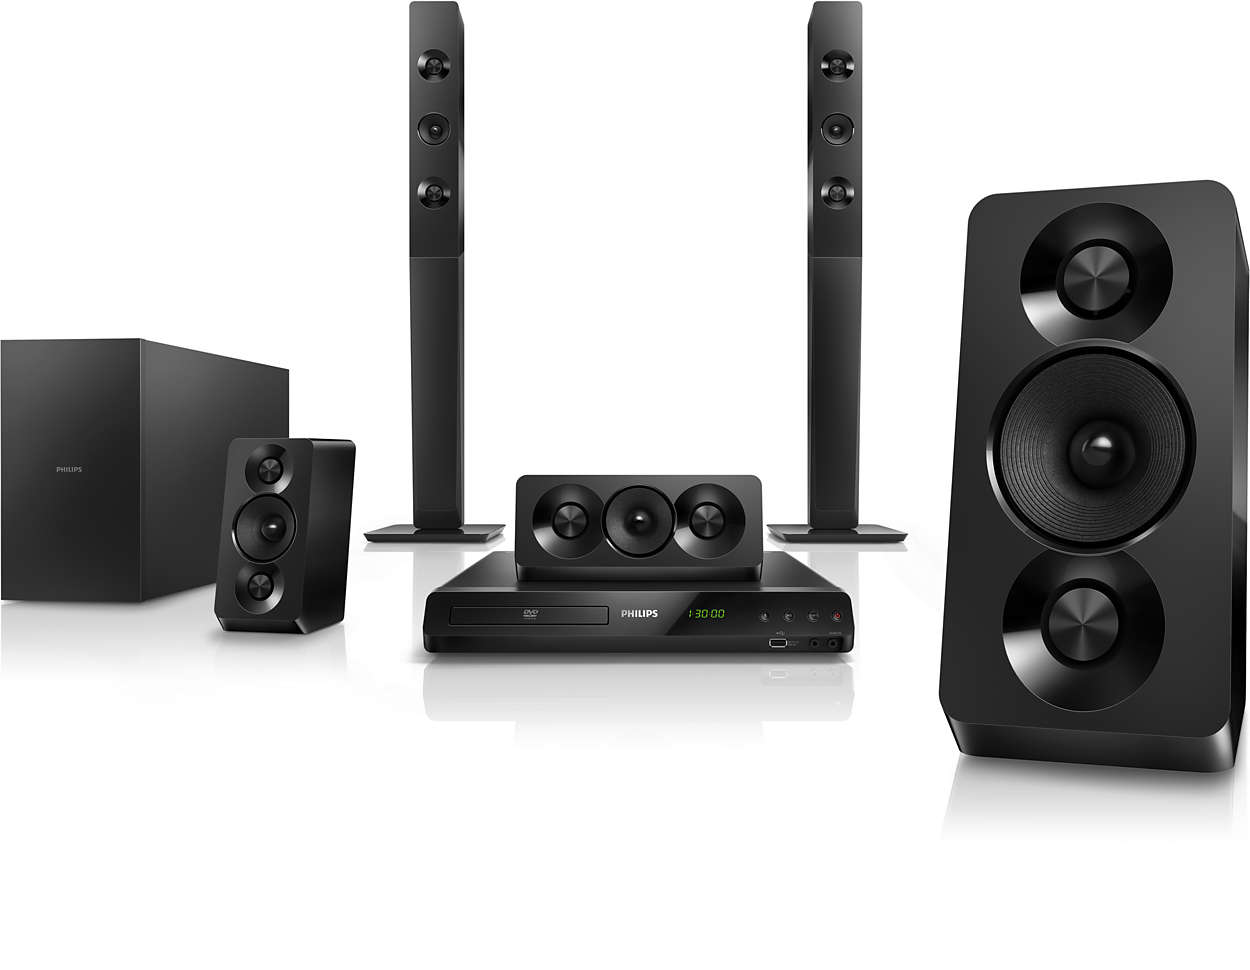 51 Dvd Home Theater Htd5550 94 Philips Wiring For Speakers In Theaters Powerful Cinematic Surround Sound With Deep